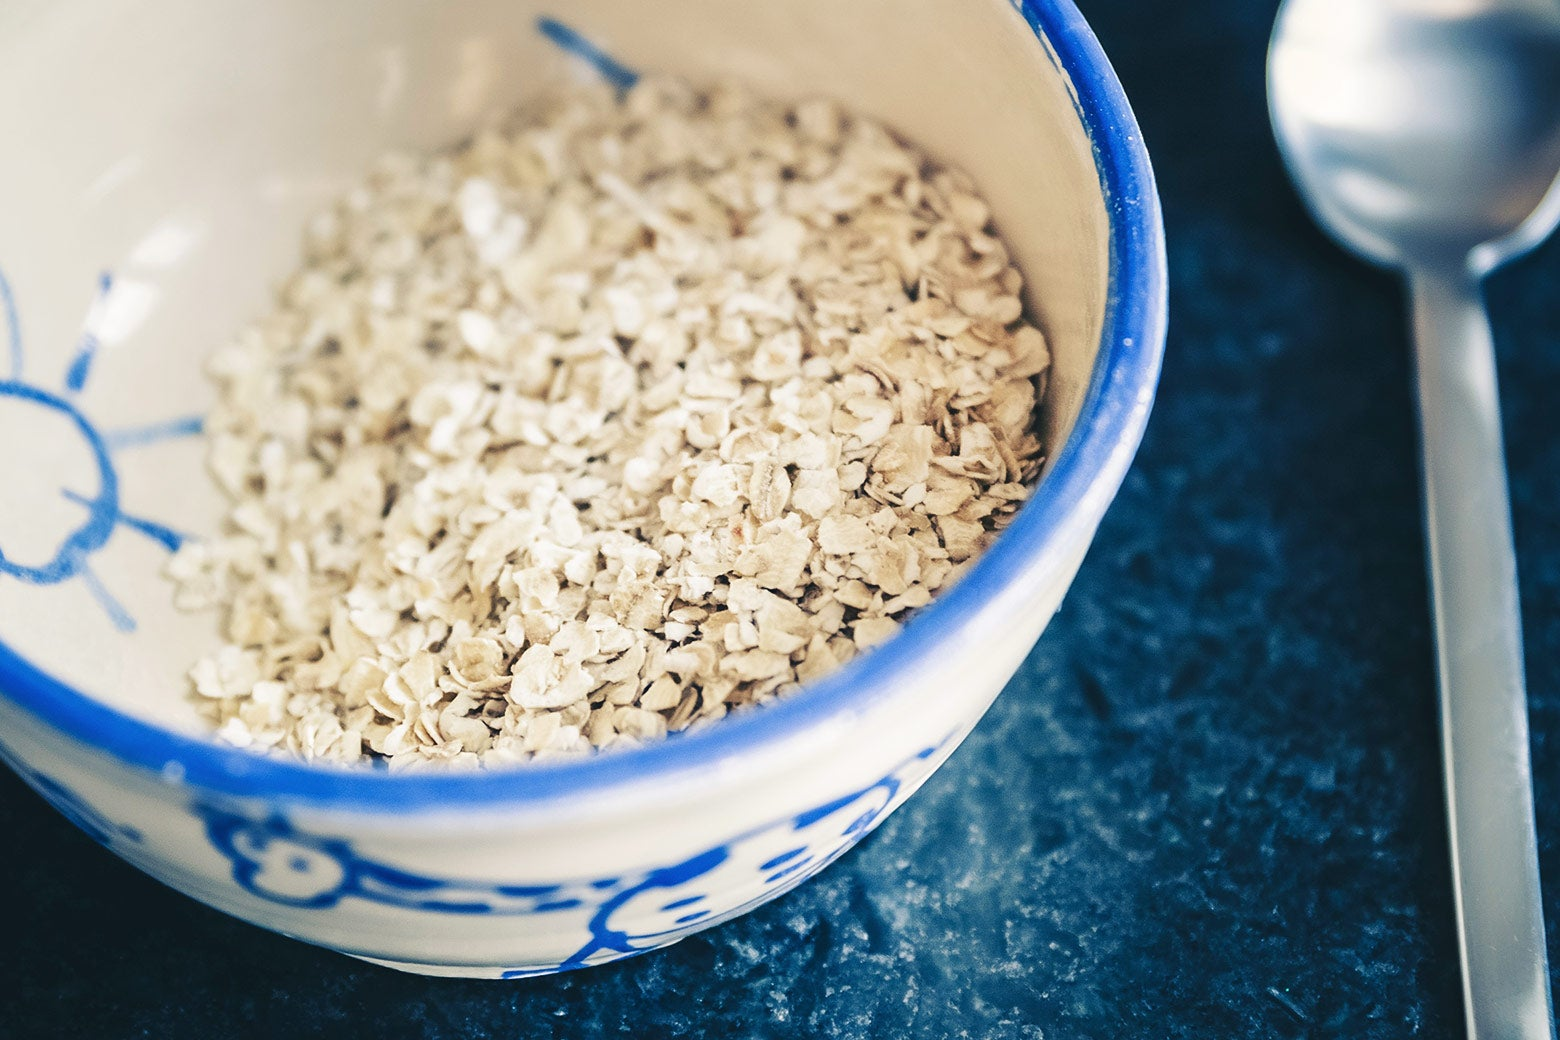 A bowl of uncooked oats beside a metal spoon.